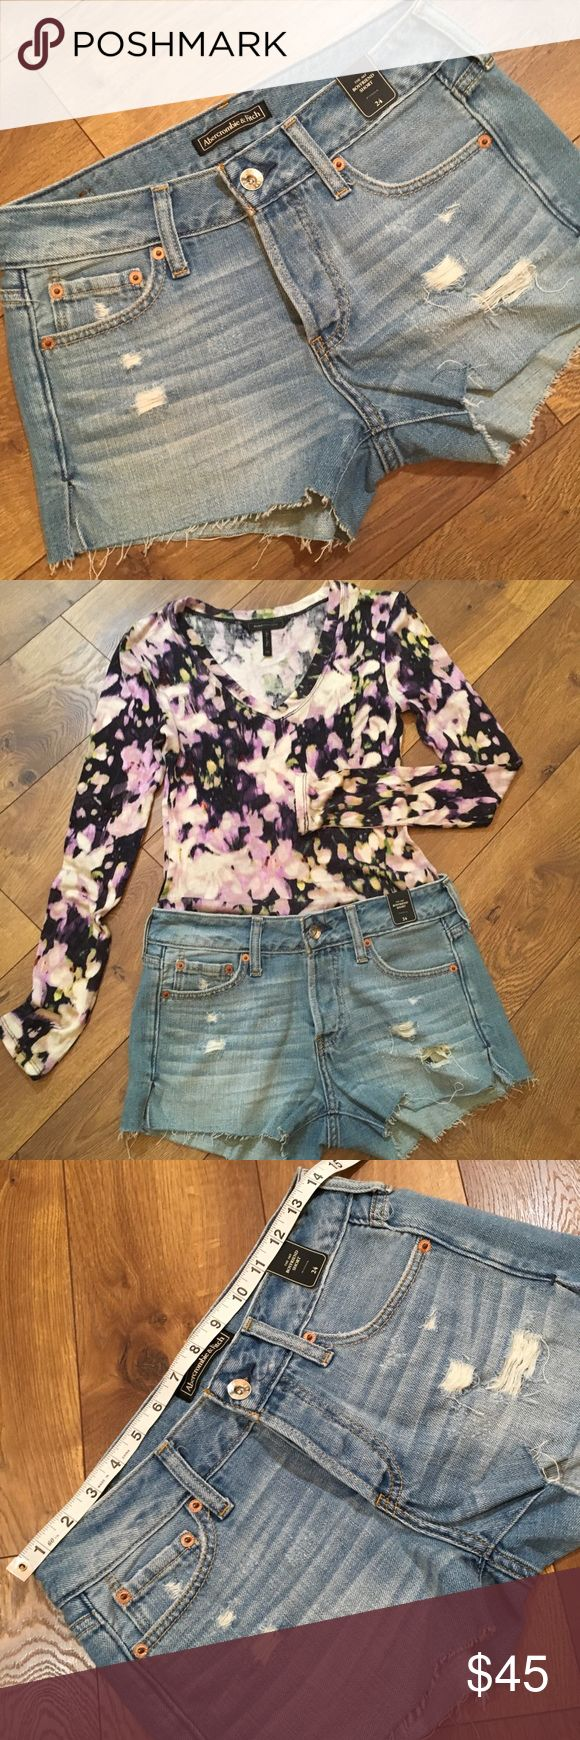 """DISTRESSED ABERCROMBIE BOYFRIEND SHORT Distressed """"The Boyfriend Short"""" PLEASE LOOK AT MEASUREMENTS. Labeled 24 waist but they are too big on me and I wear a 25. inseam 3"""" rise 9""""   Light blue 💥see tag no lowball please Abercrombie & Fitch Shorts Jean Shorts"""